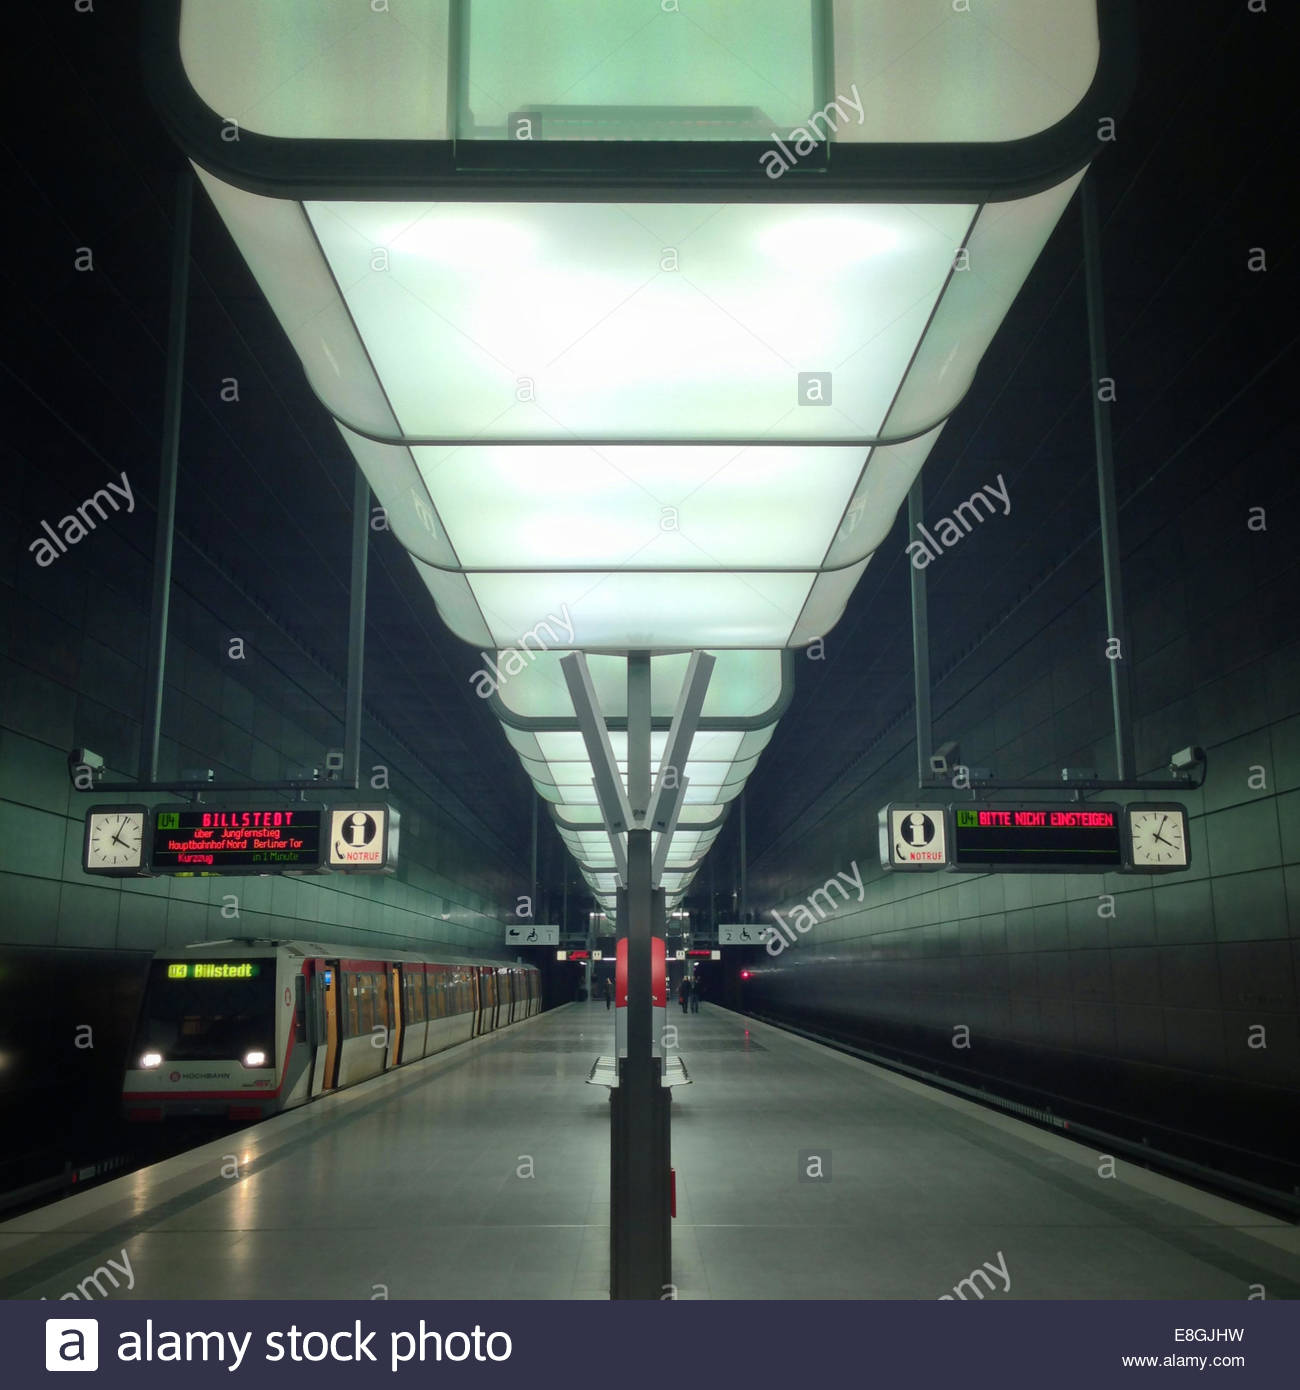 Illuminated train platform - Stock Image